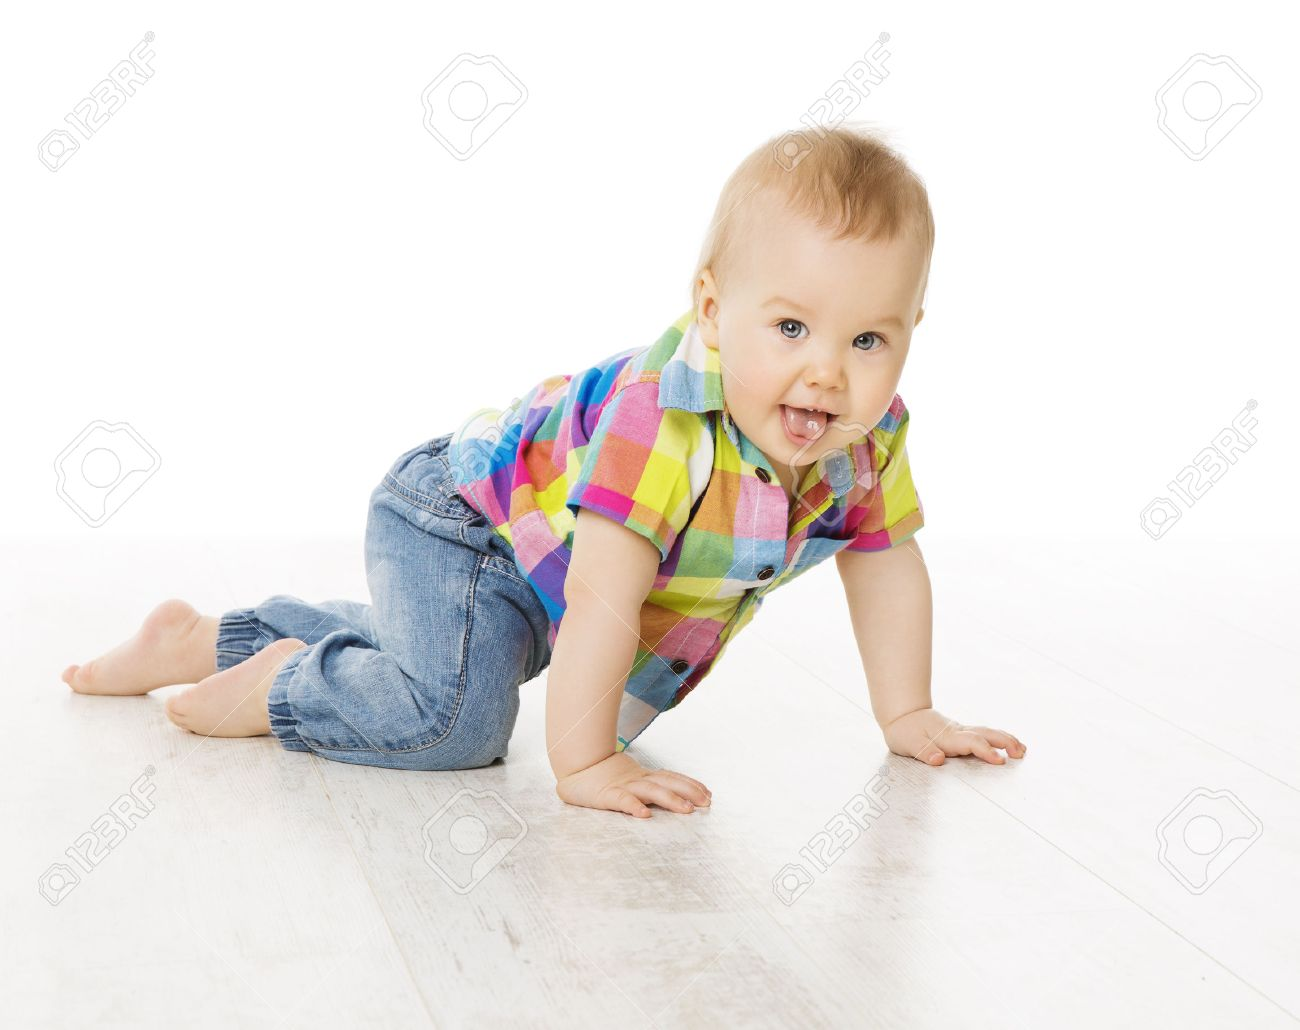 9405f4420d5 Baby Activity, Crawling Little Child Boy Dressed Jeans Color Shirt, Active  Kid Isolated over